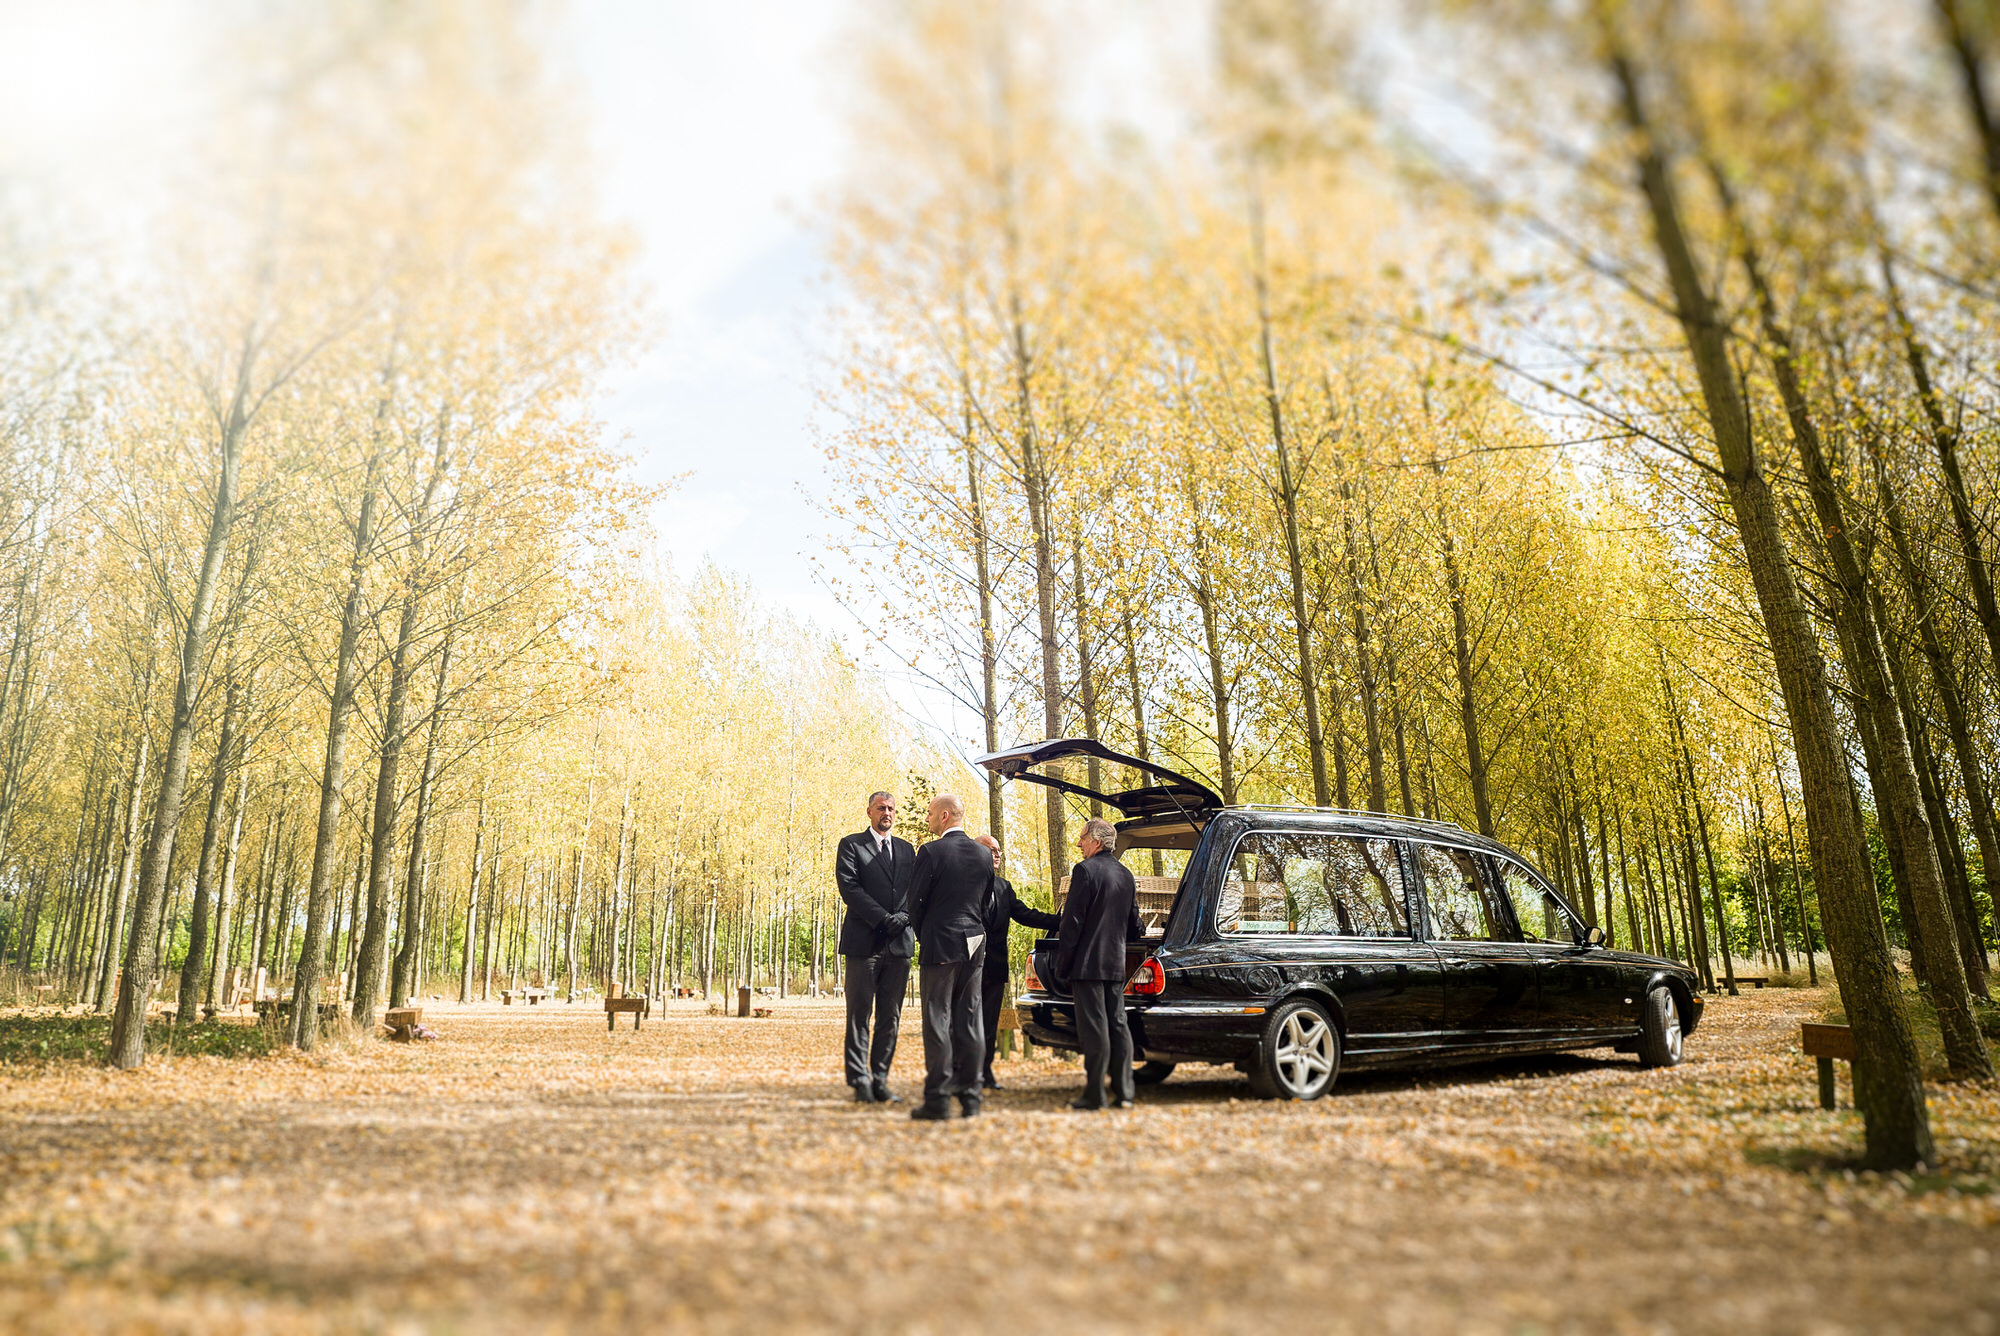 St Albans Woodland Burial Ground - Funeral Photographer and videographer